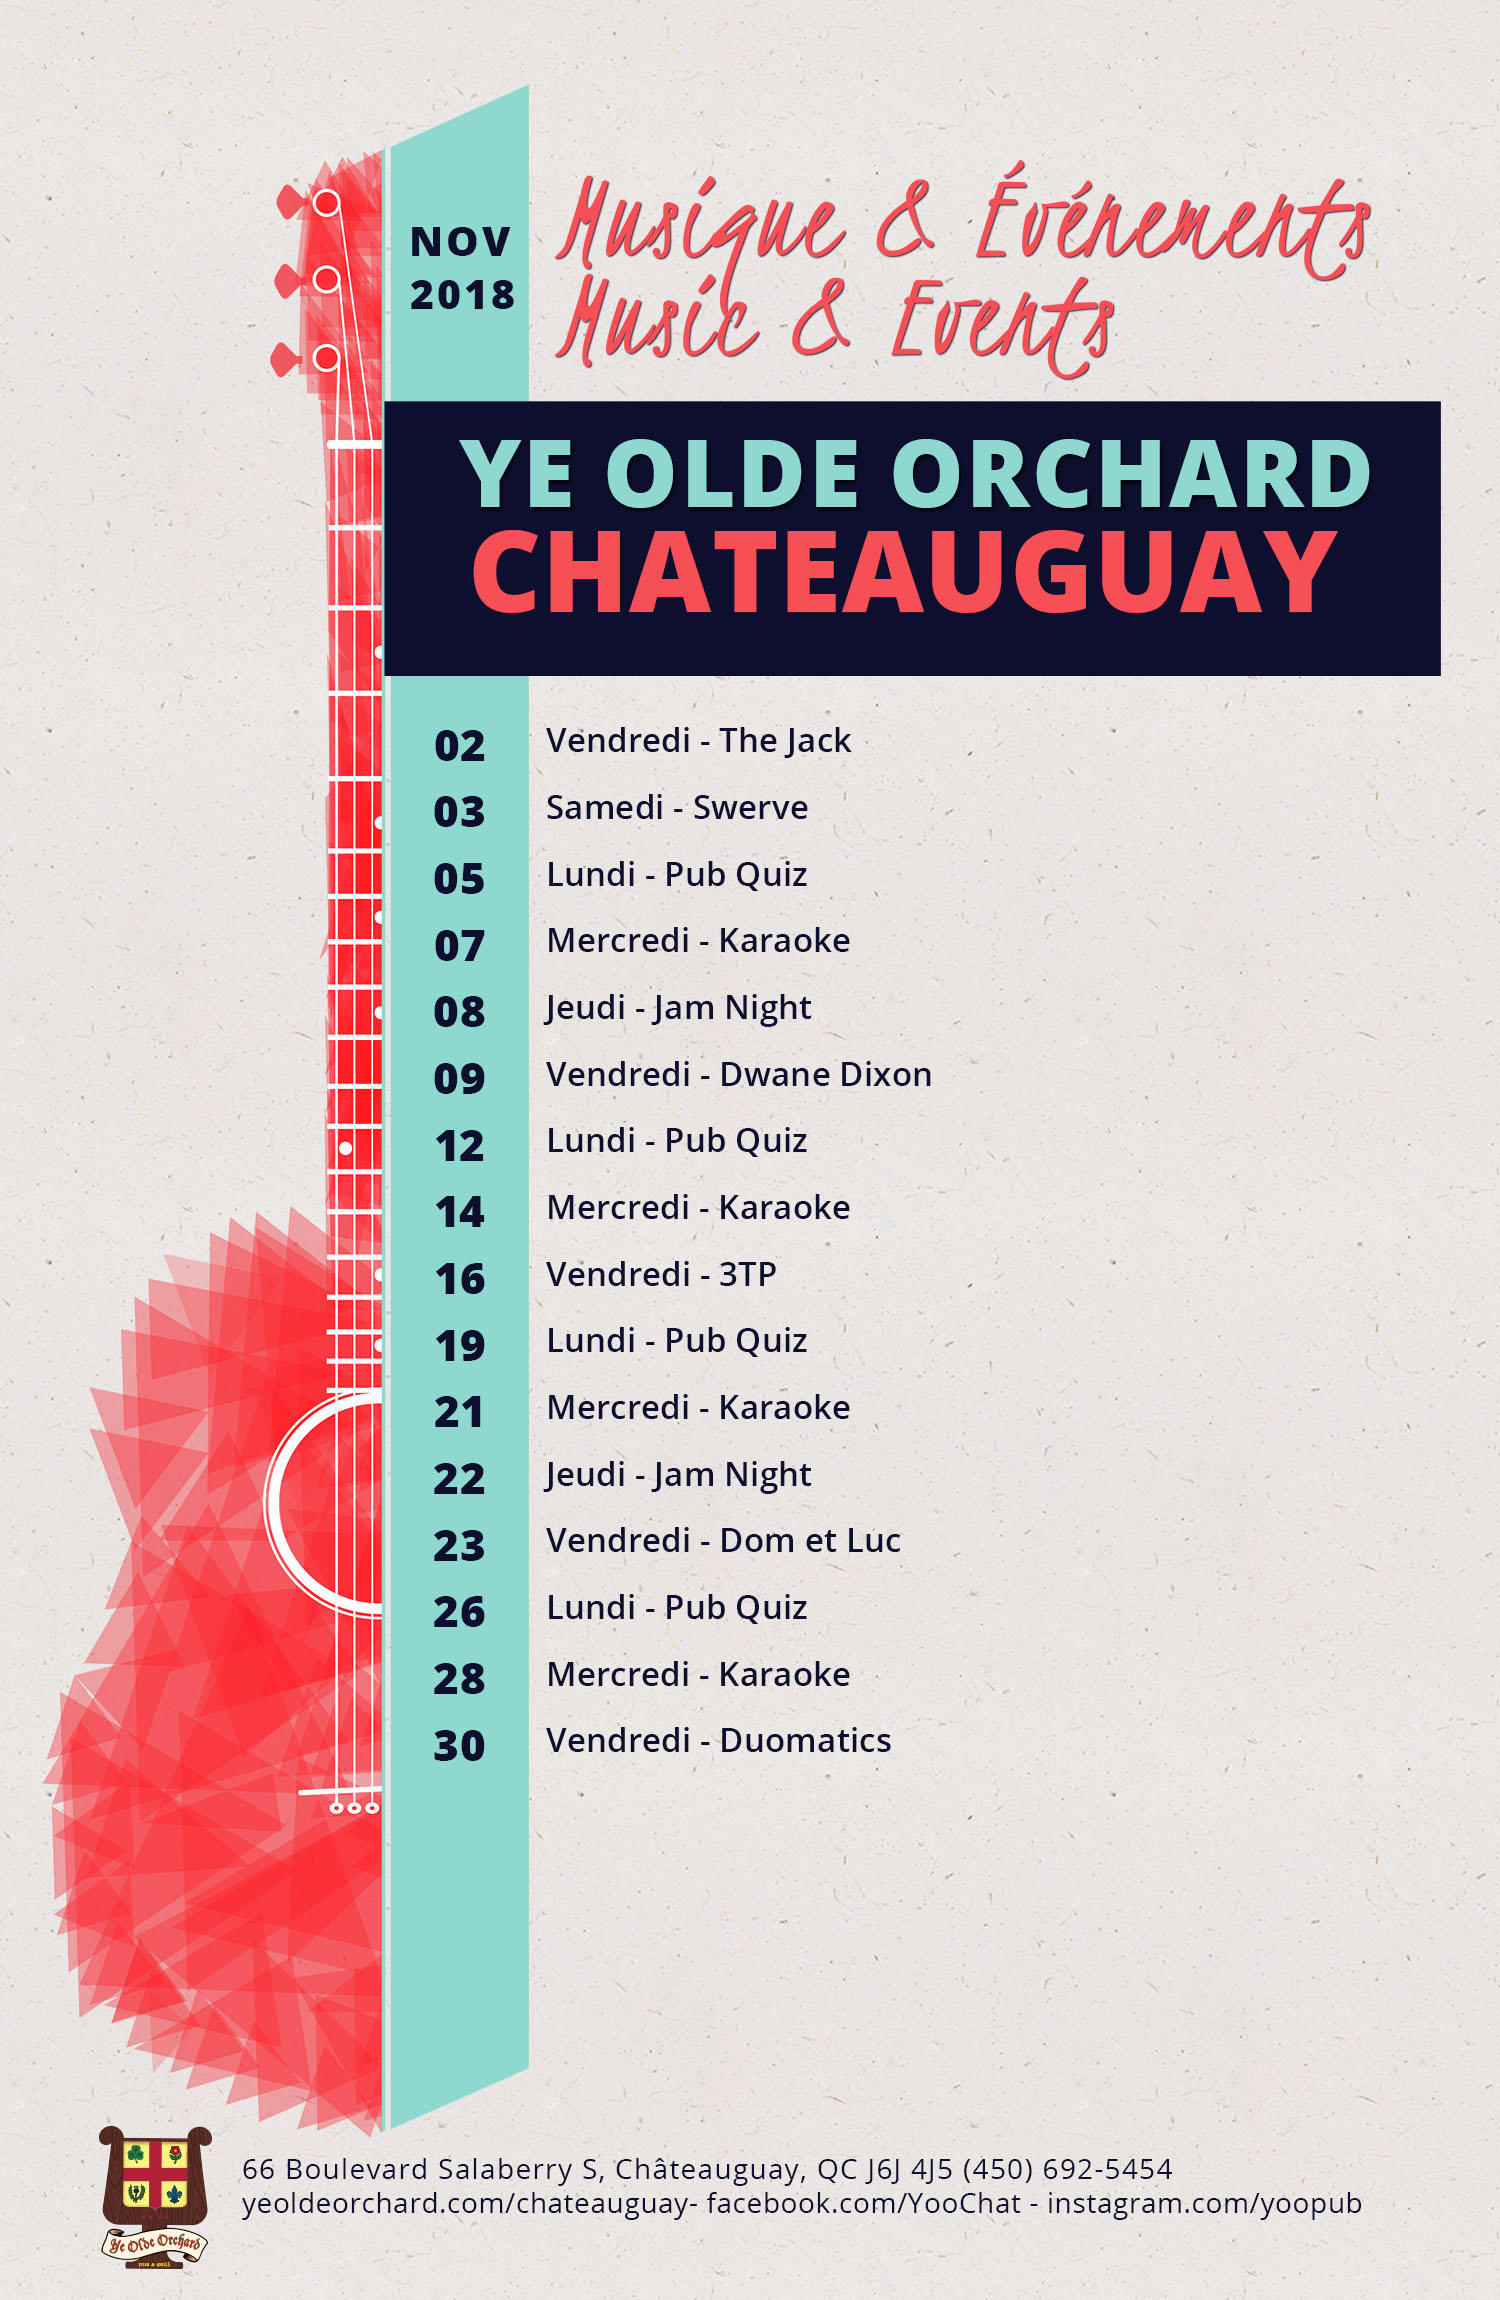 ye-olde-orchard-pub-music-and-events-calendar-Chateauguay-NOV